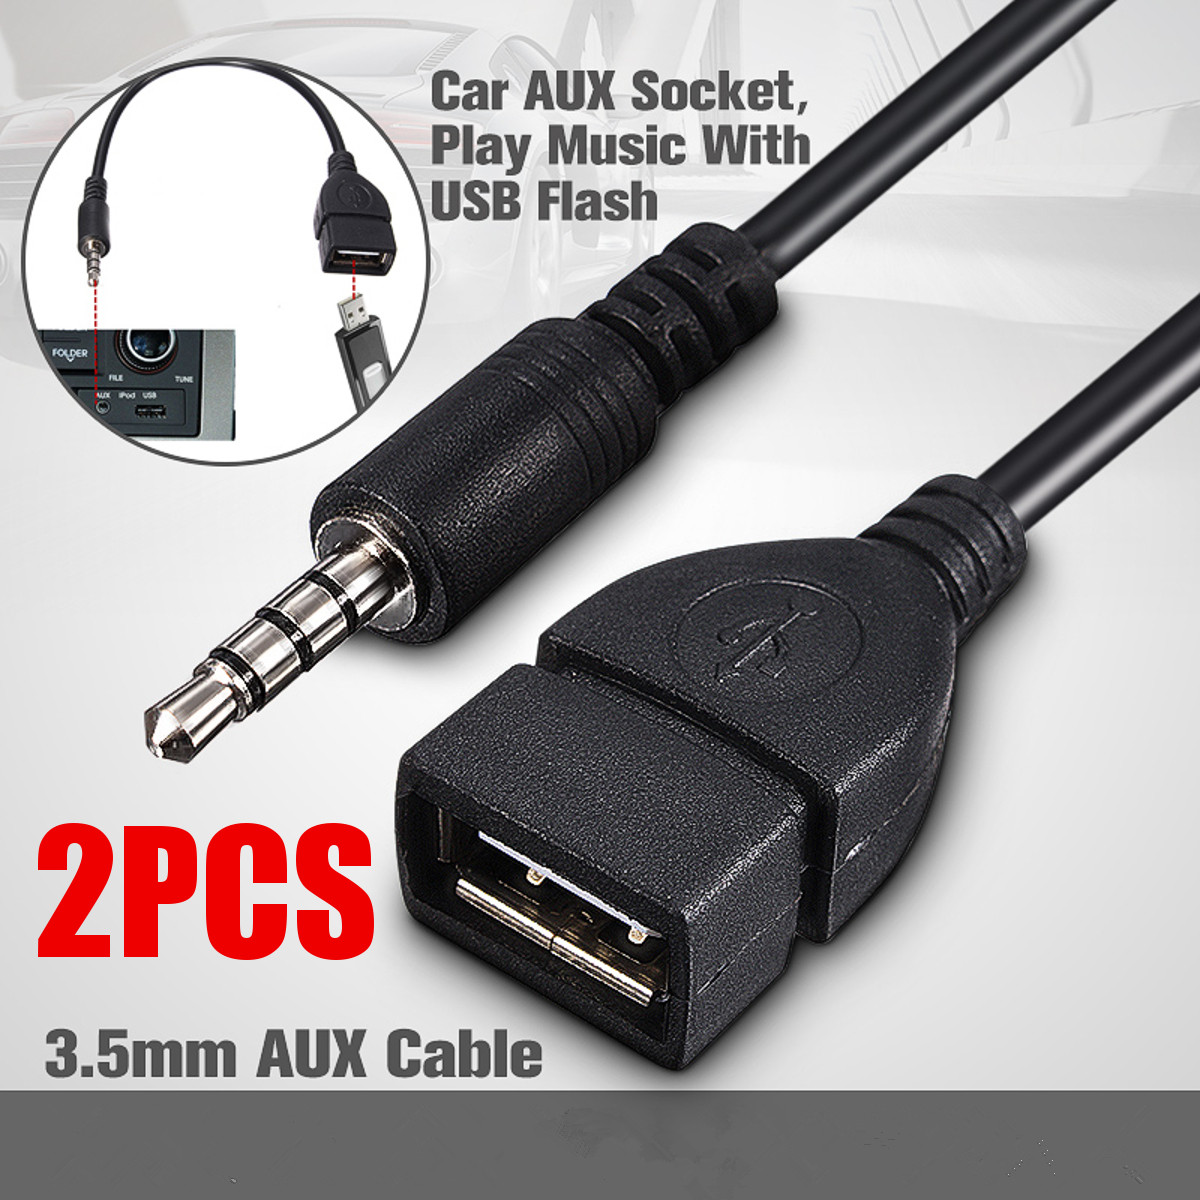 2PCS Audio Converter Adapter USB Female to AUX 3.5mm Male Jack Plug Data Charge Cable